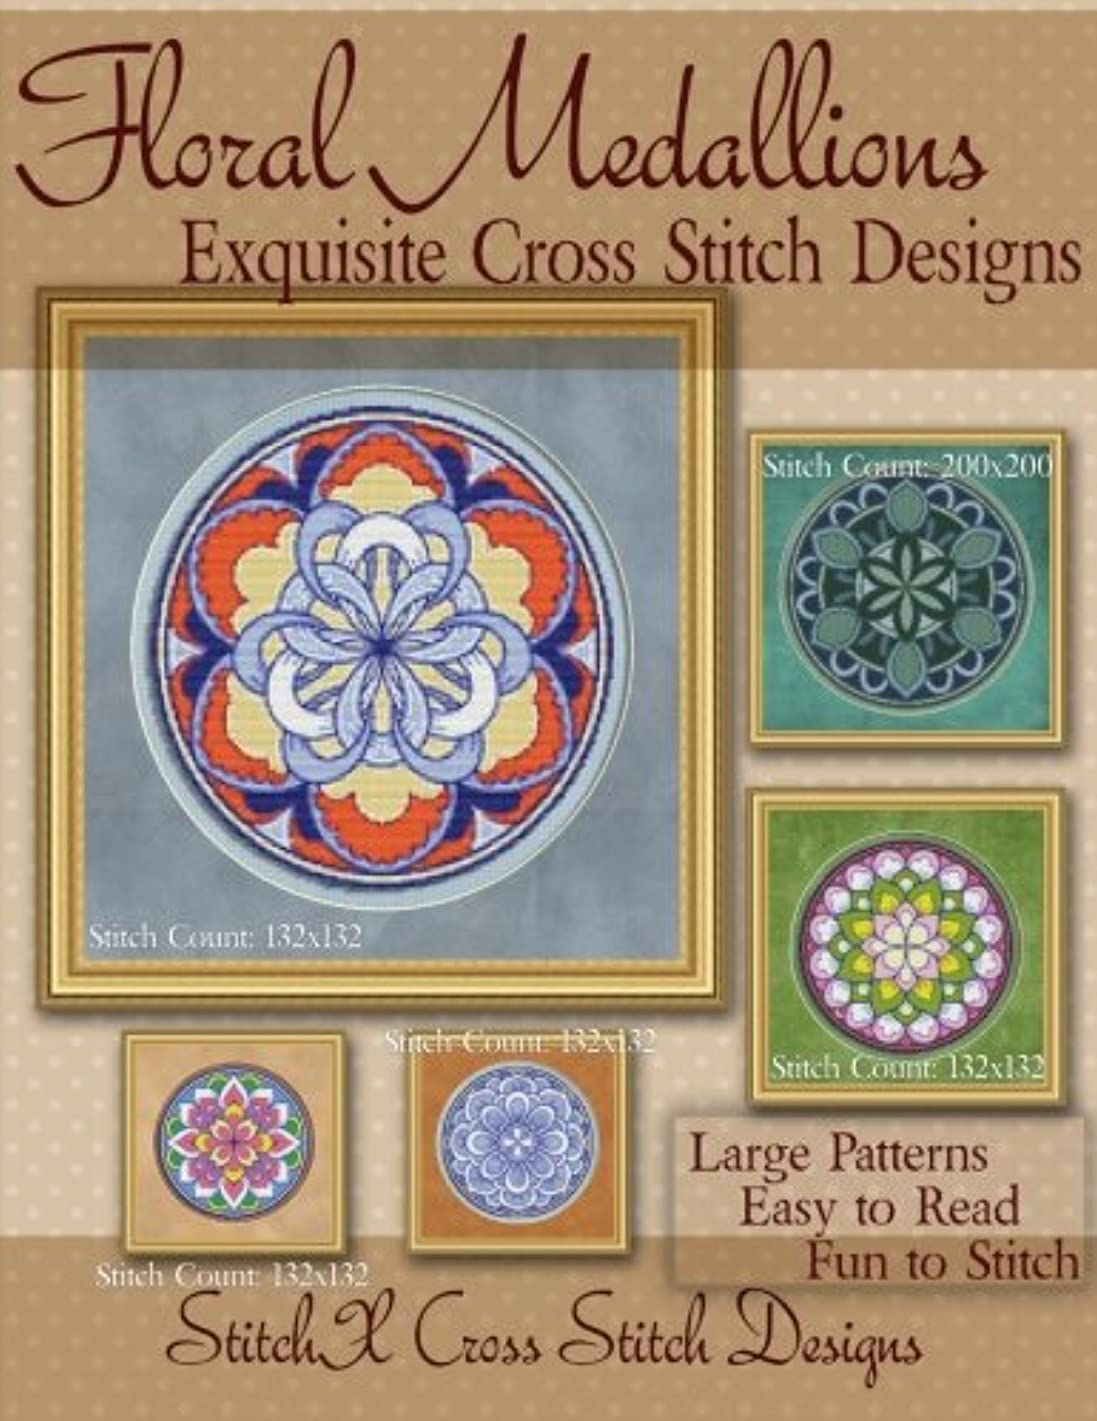 Floral Medallions Exquisite Cross Stitch designs: Five Designs for Cross Stitch in Fun Geometric Styles